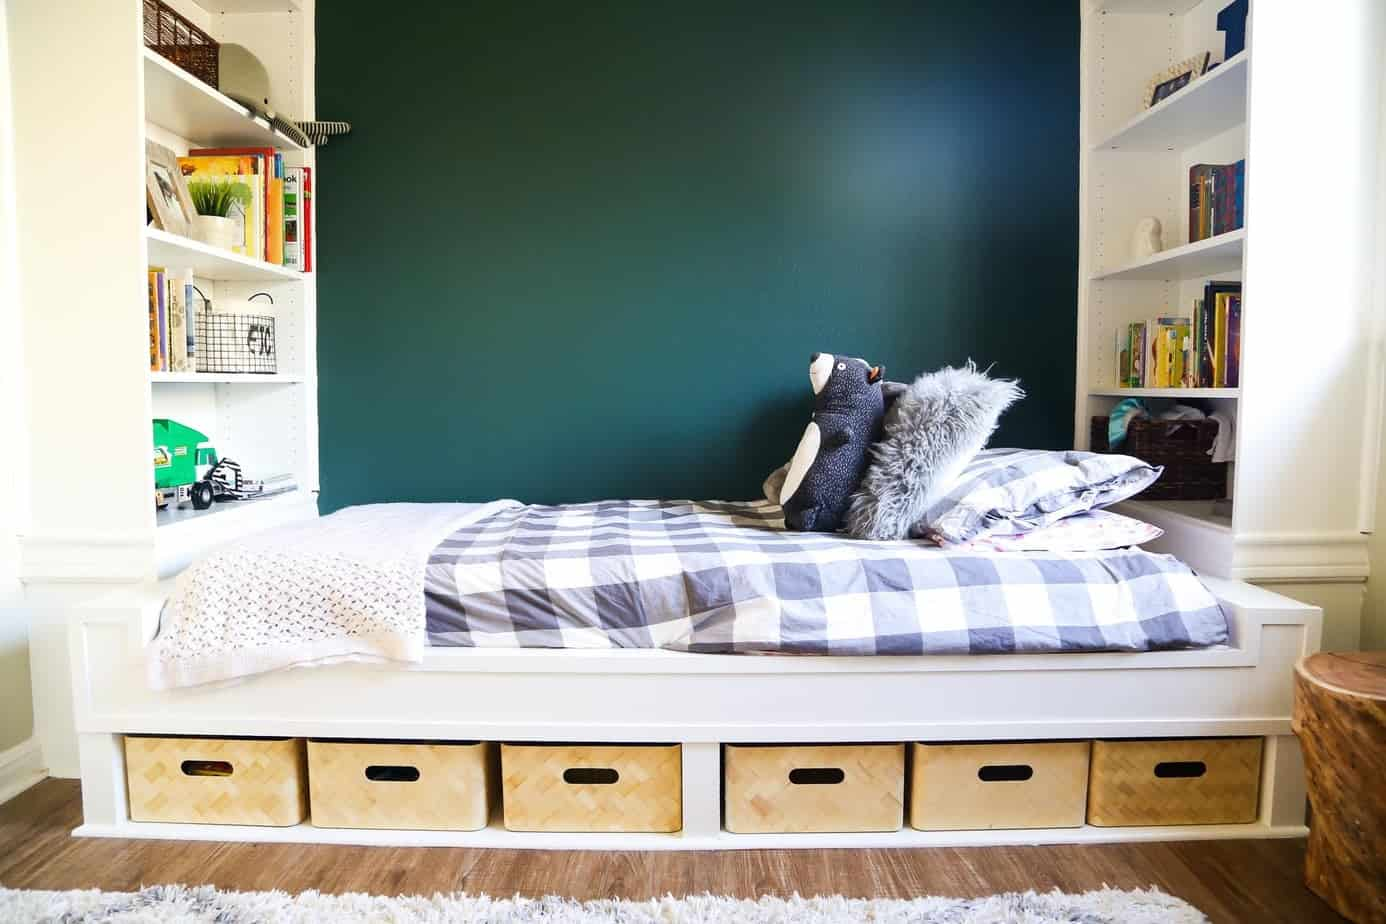 Ikea hack bed made from bookcases